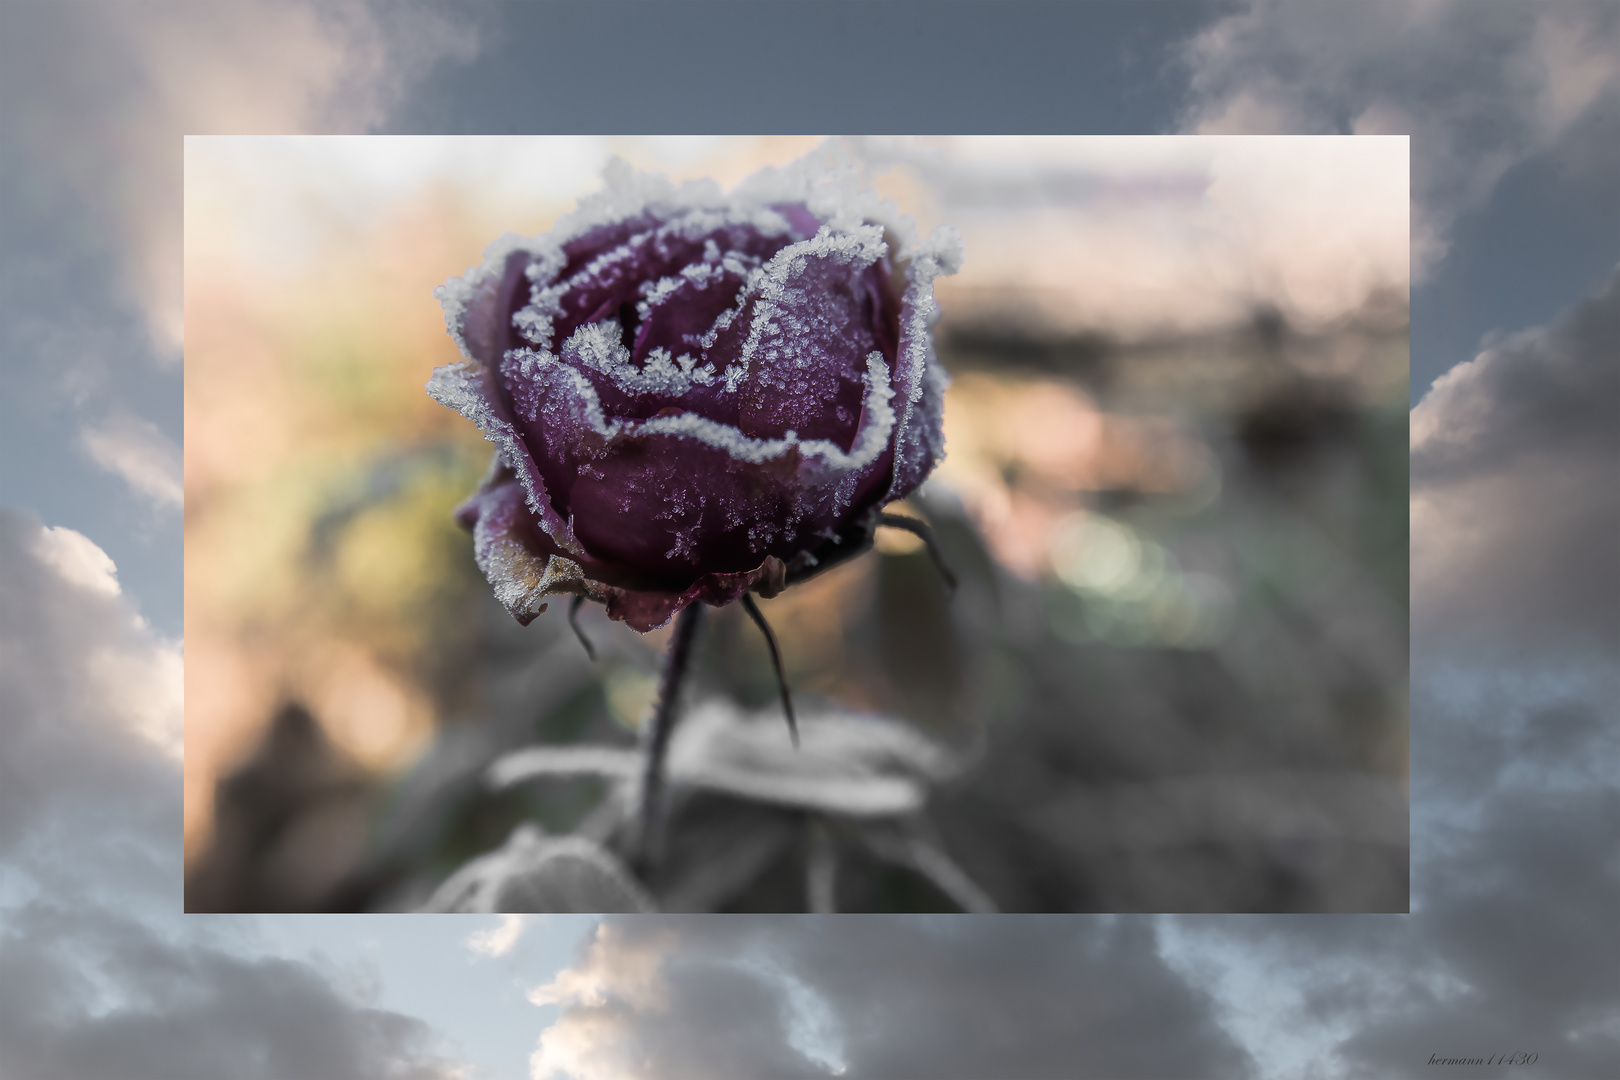 There is a rose...